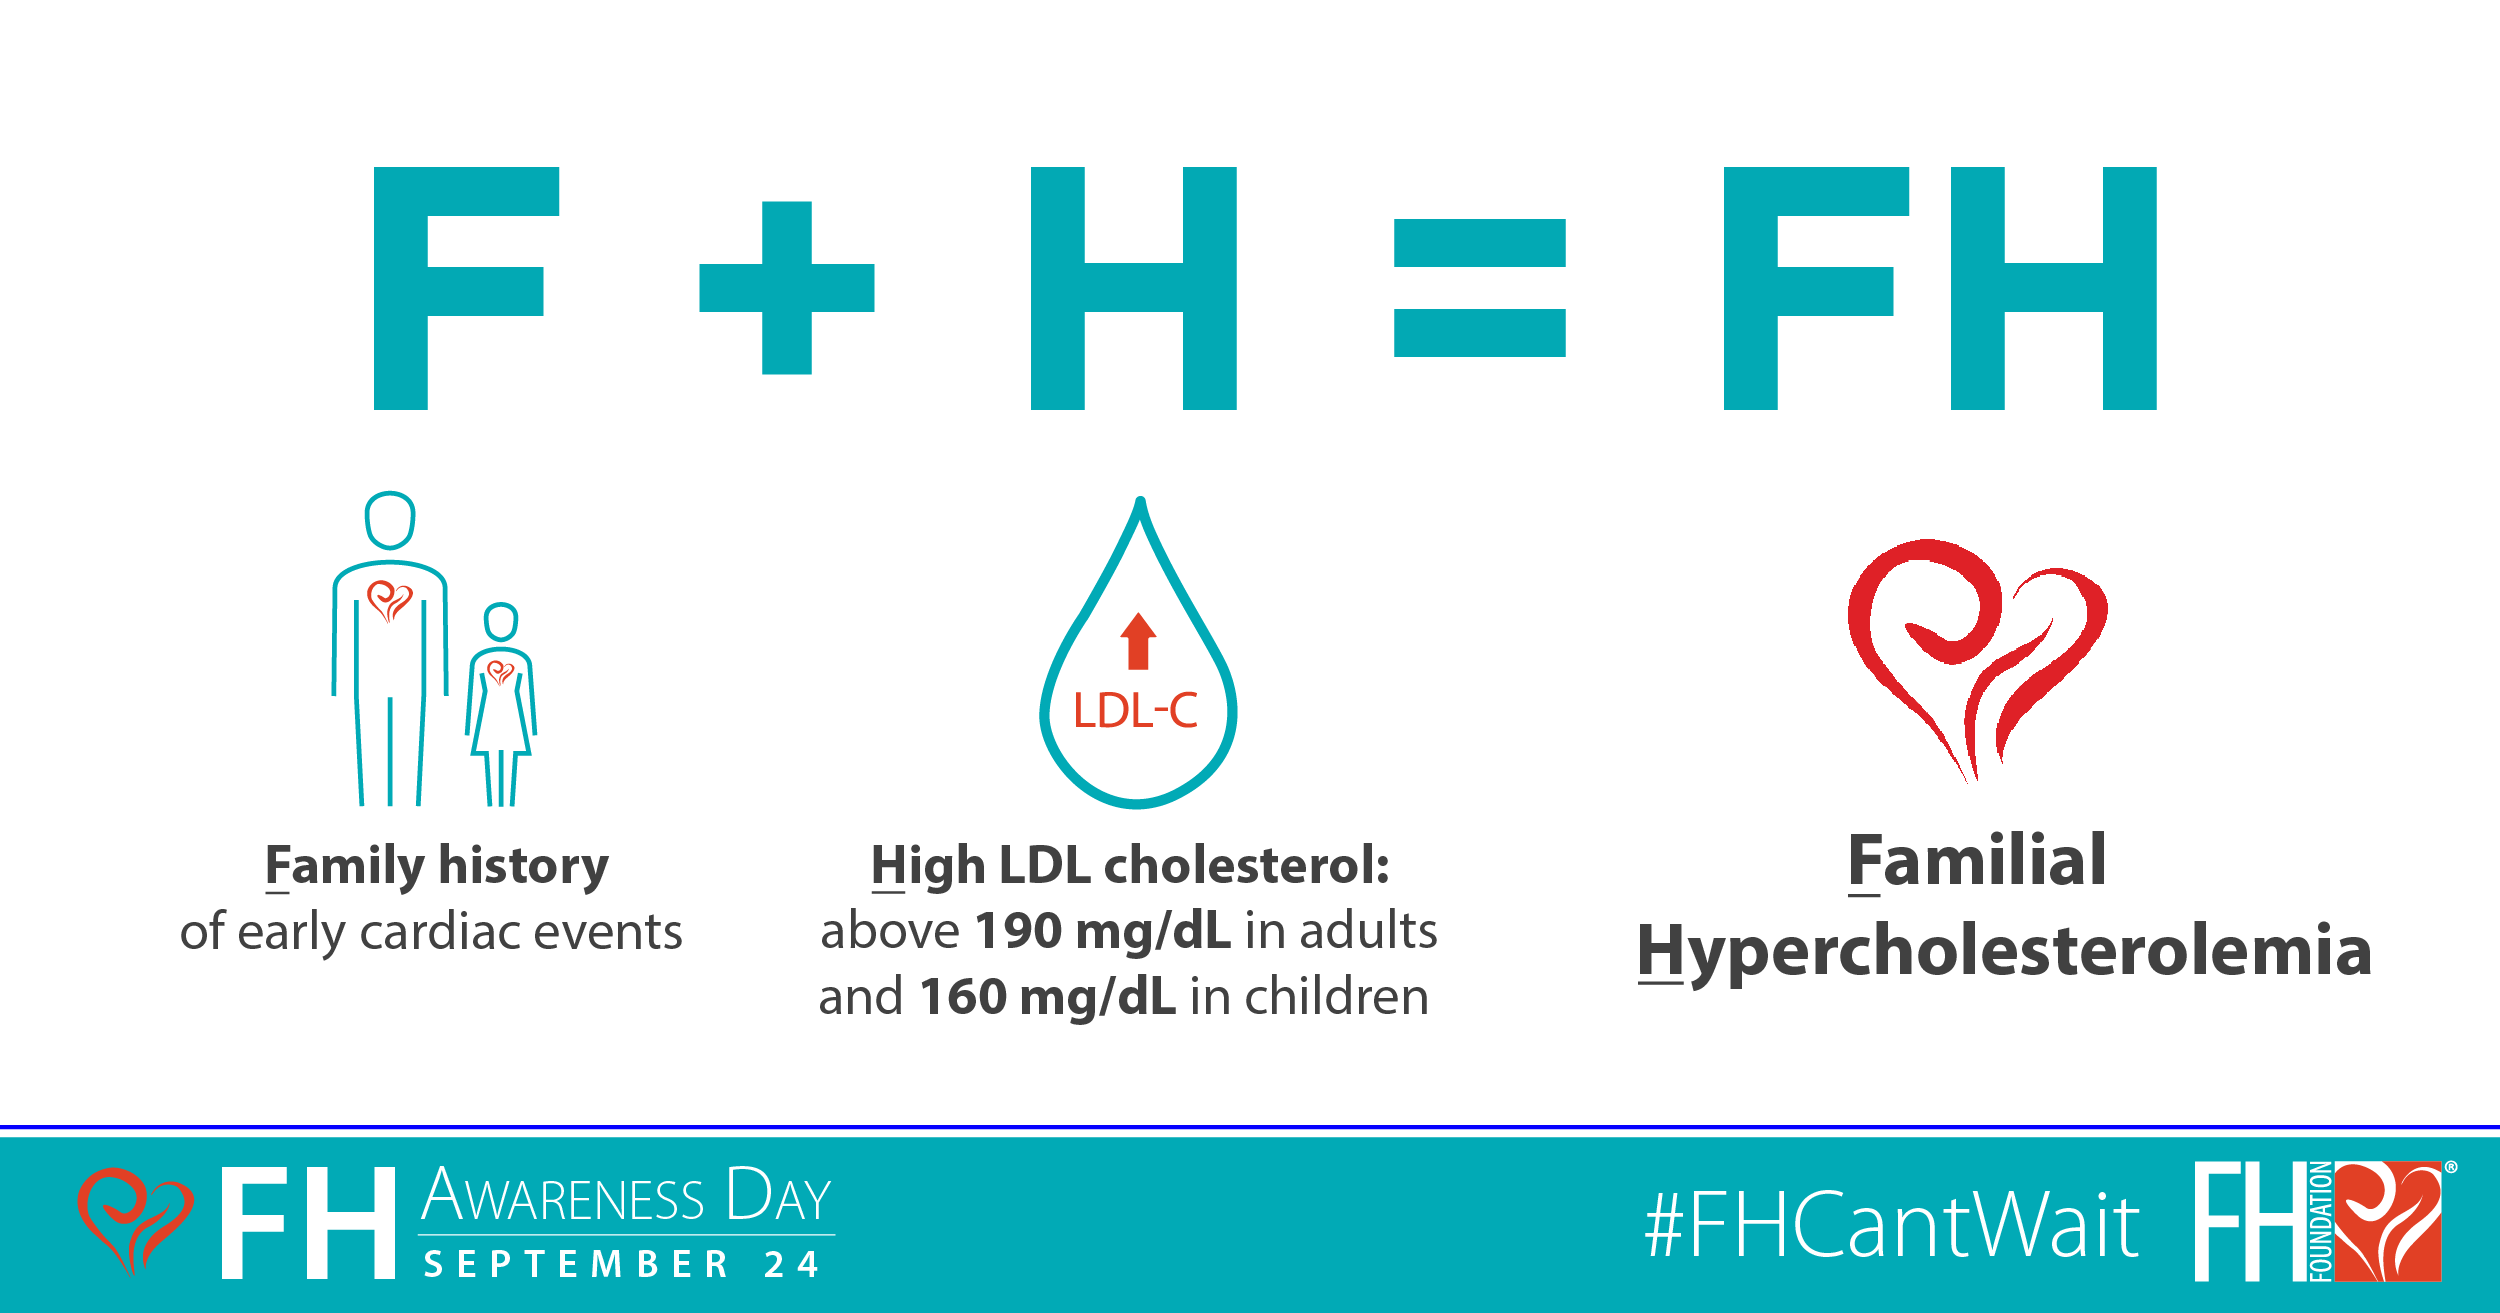 Familial Hypercholesterolemia Awareness Day (est. 2012) is a campaign  initiated by the FH Foundation to raise awareness of FH in the general  public.